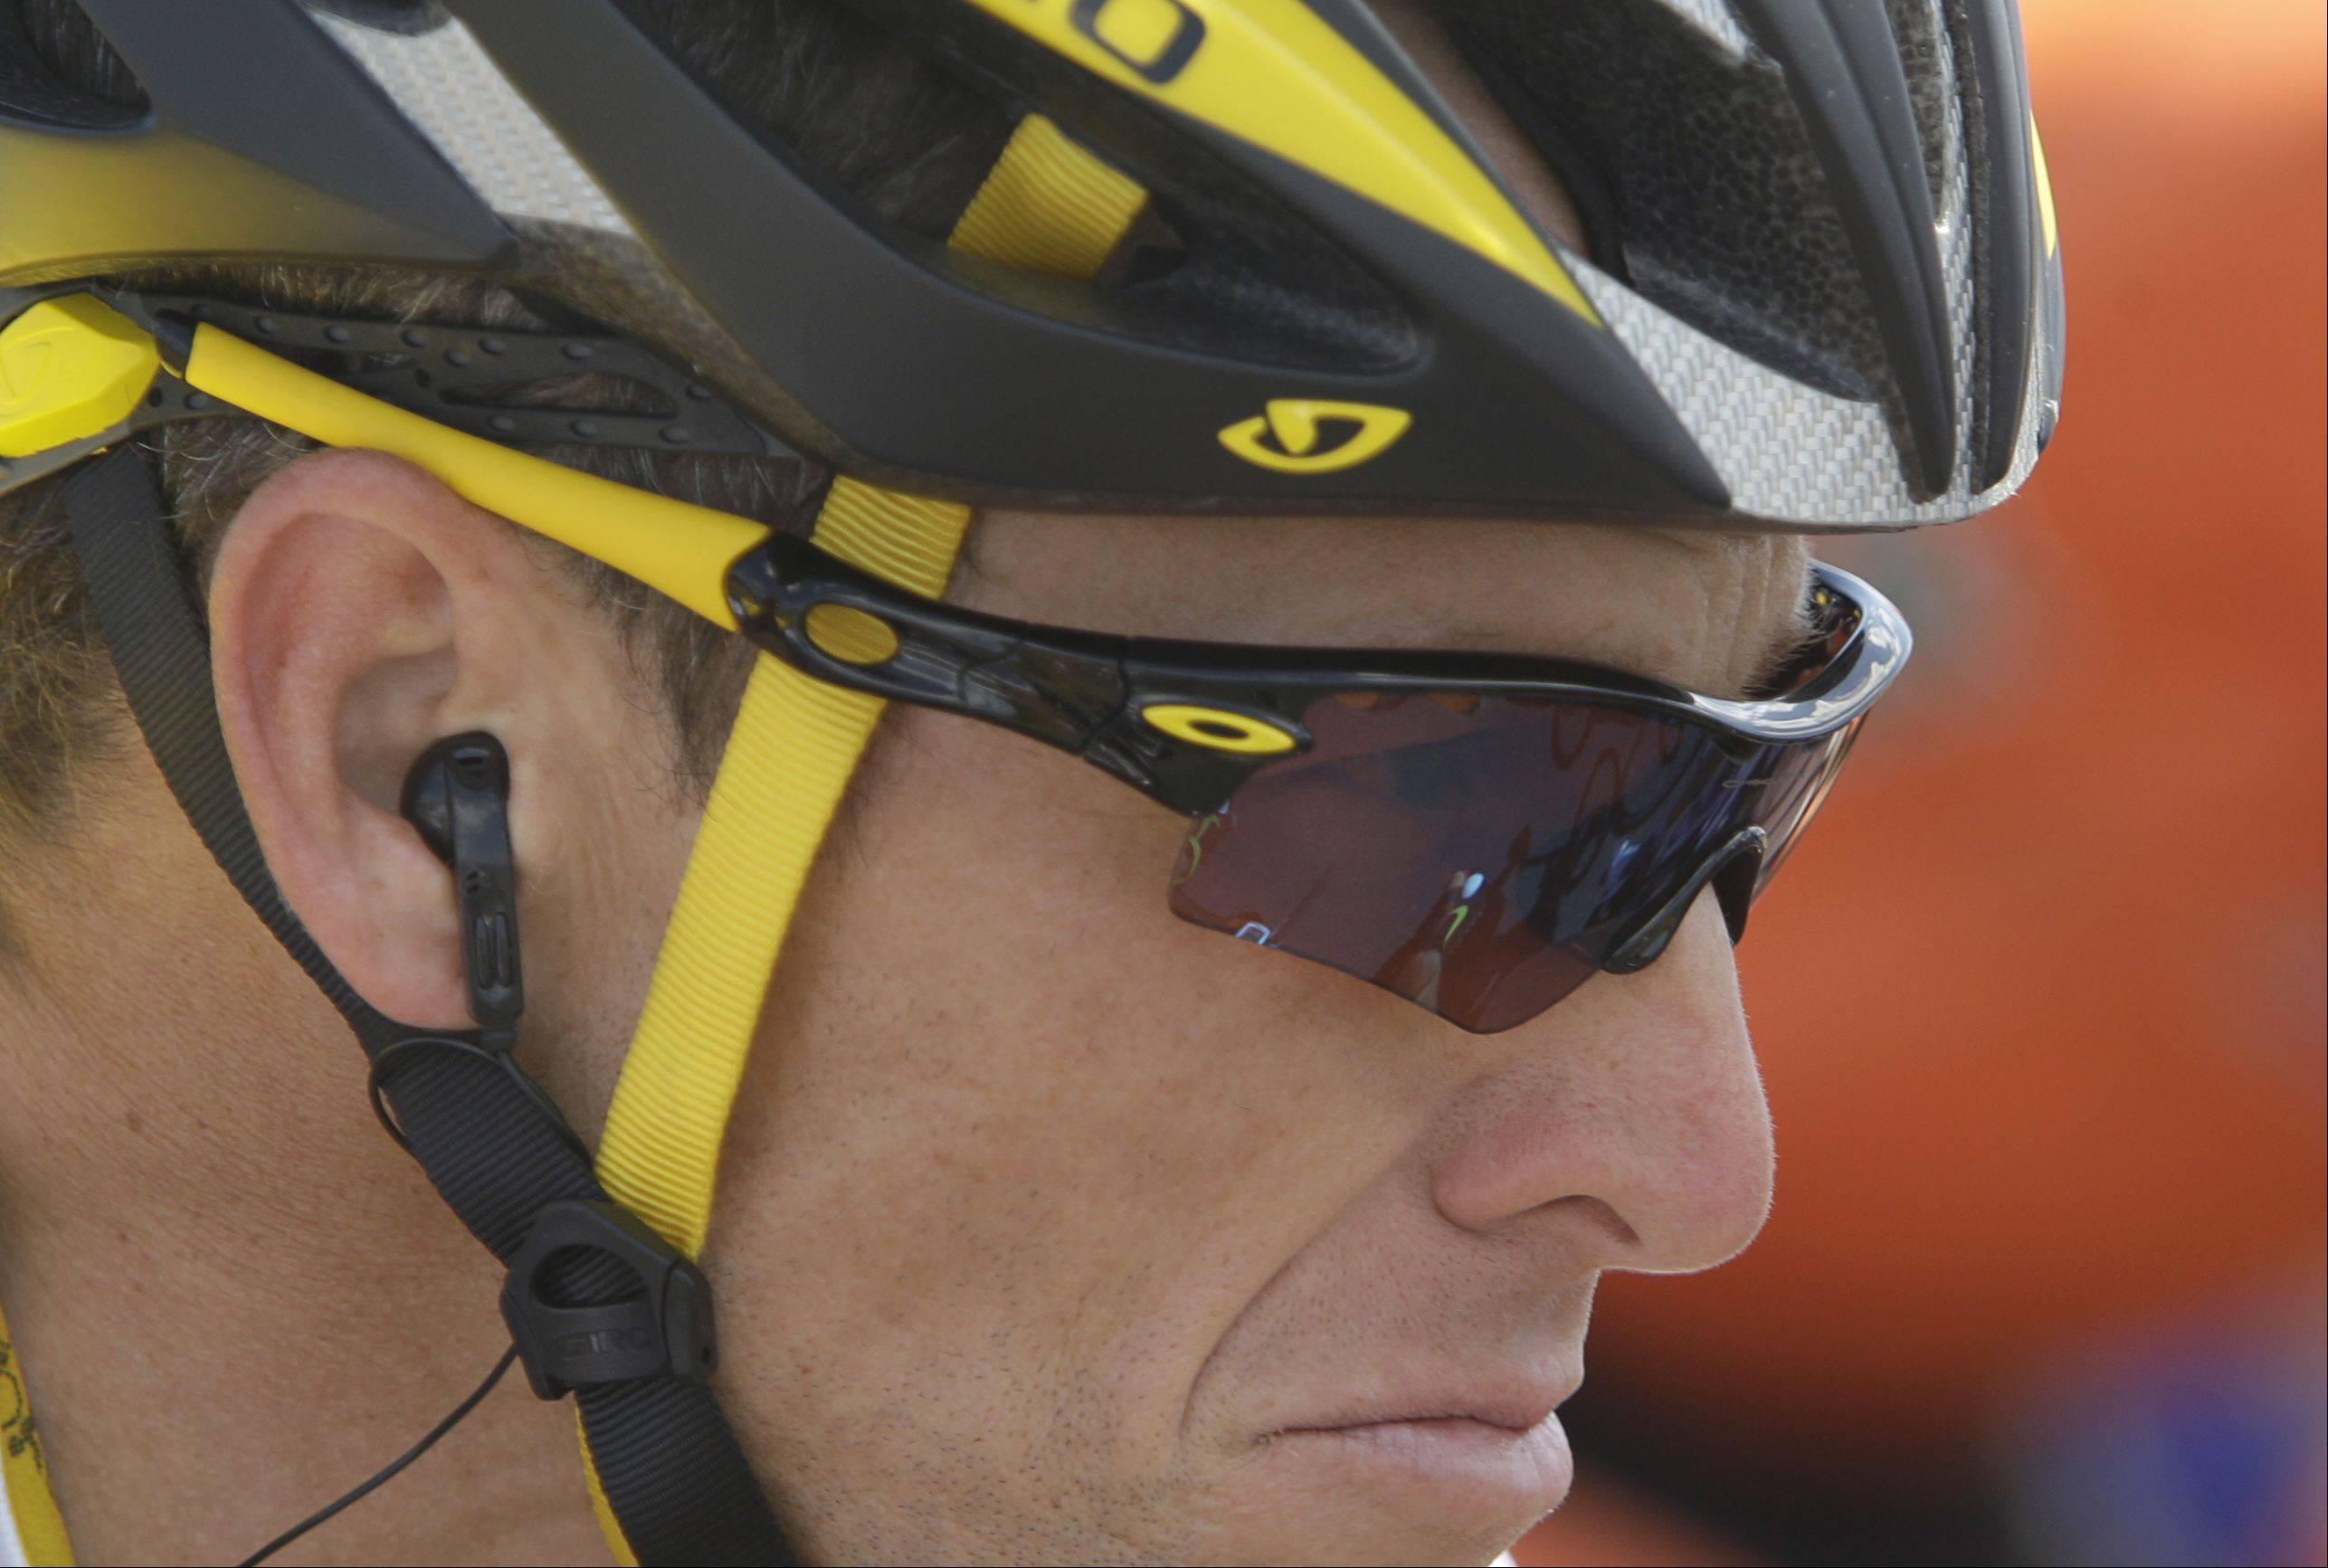 American seven-time Tour de France winner Lance Armstrong pedals during the fifth stage of the Tour de France cycling race over 196.5 kilometers (122 miles) with start in Le Cap d'Agde and finish in Perpignan, southern France, Wednesday July 8, 2009.